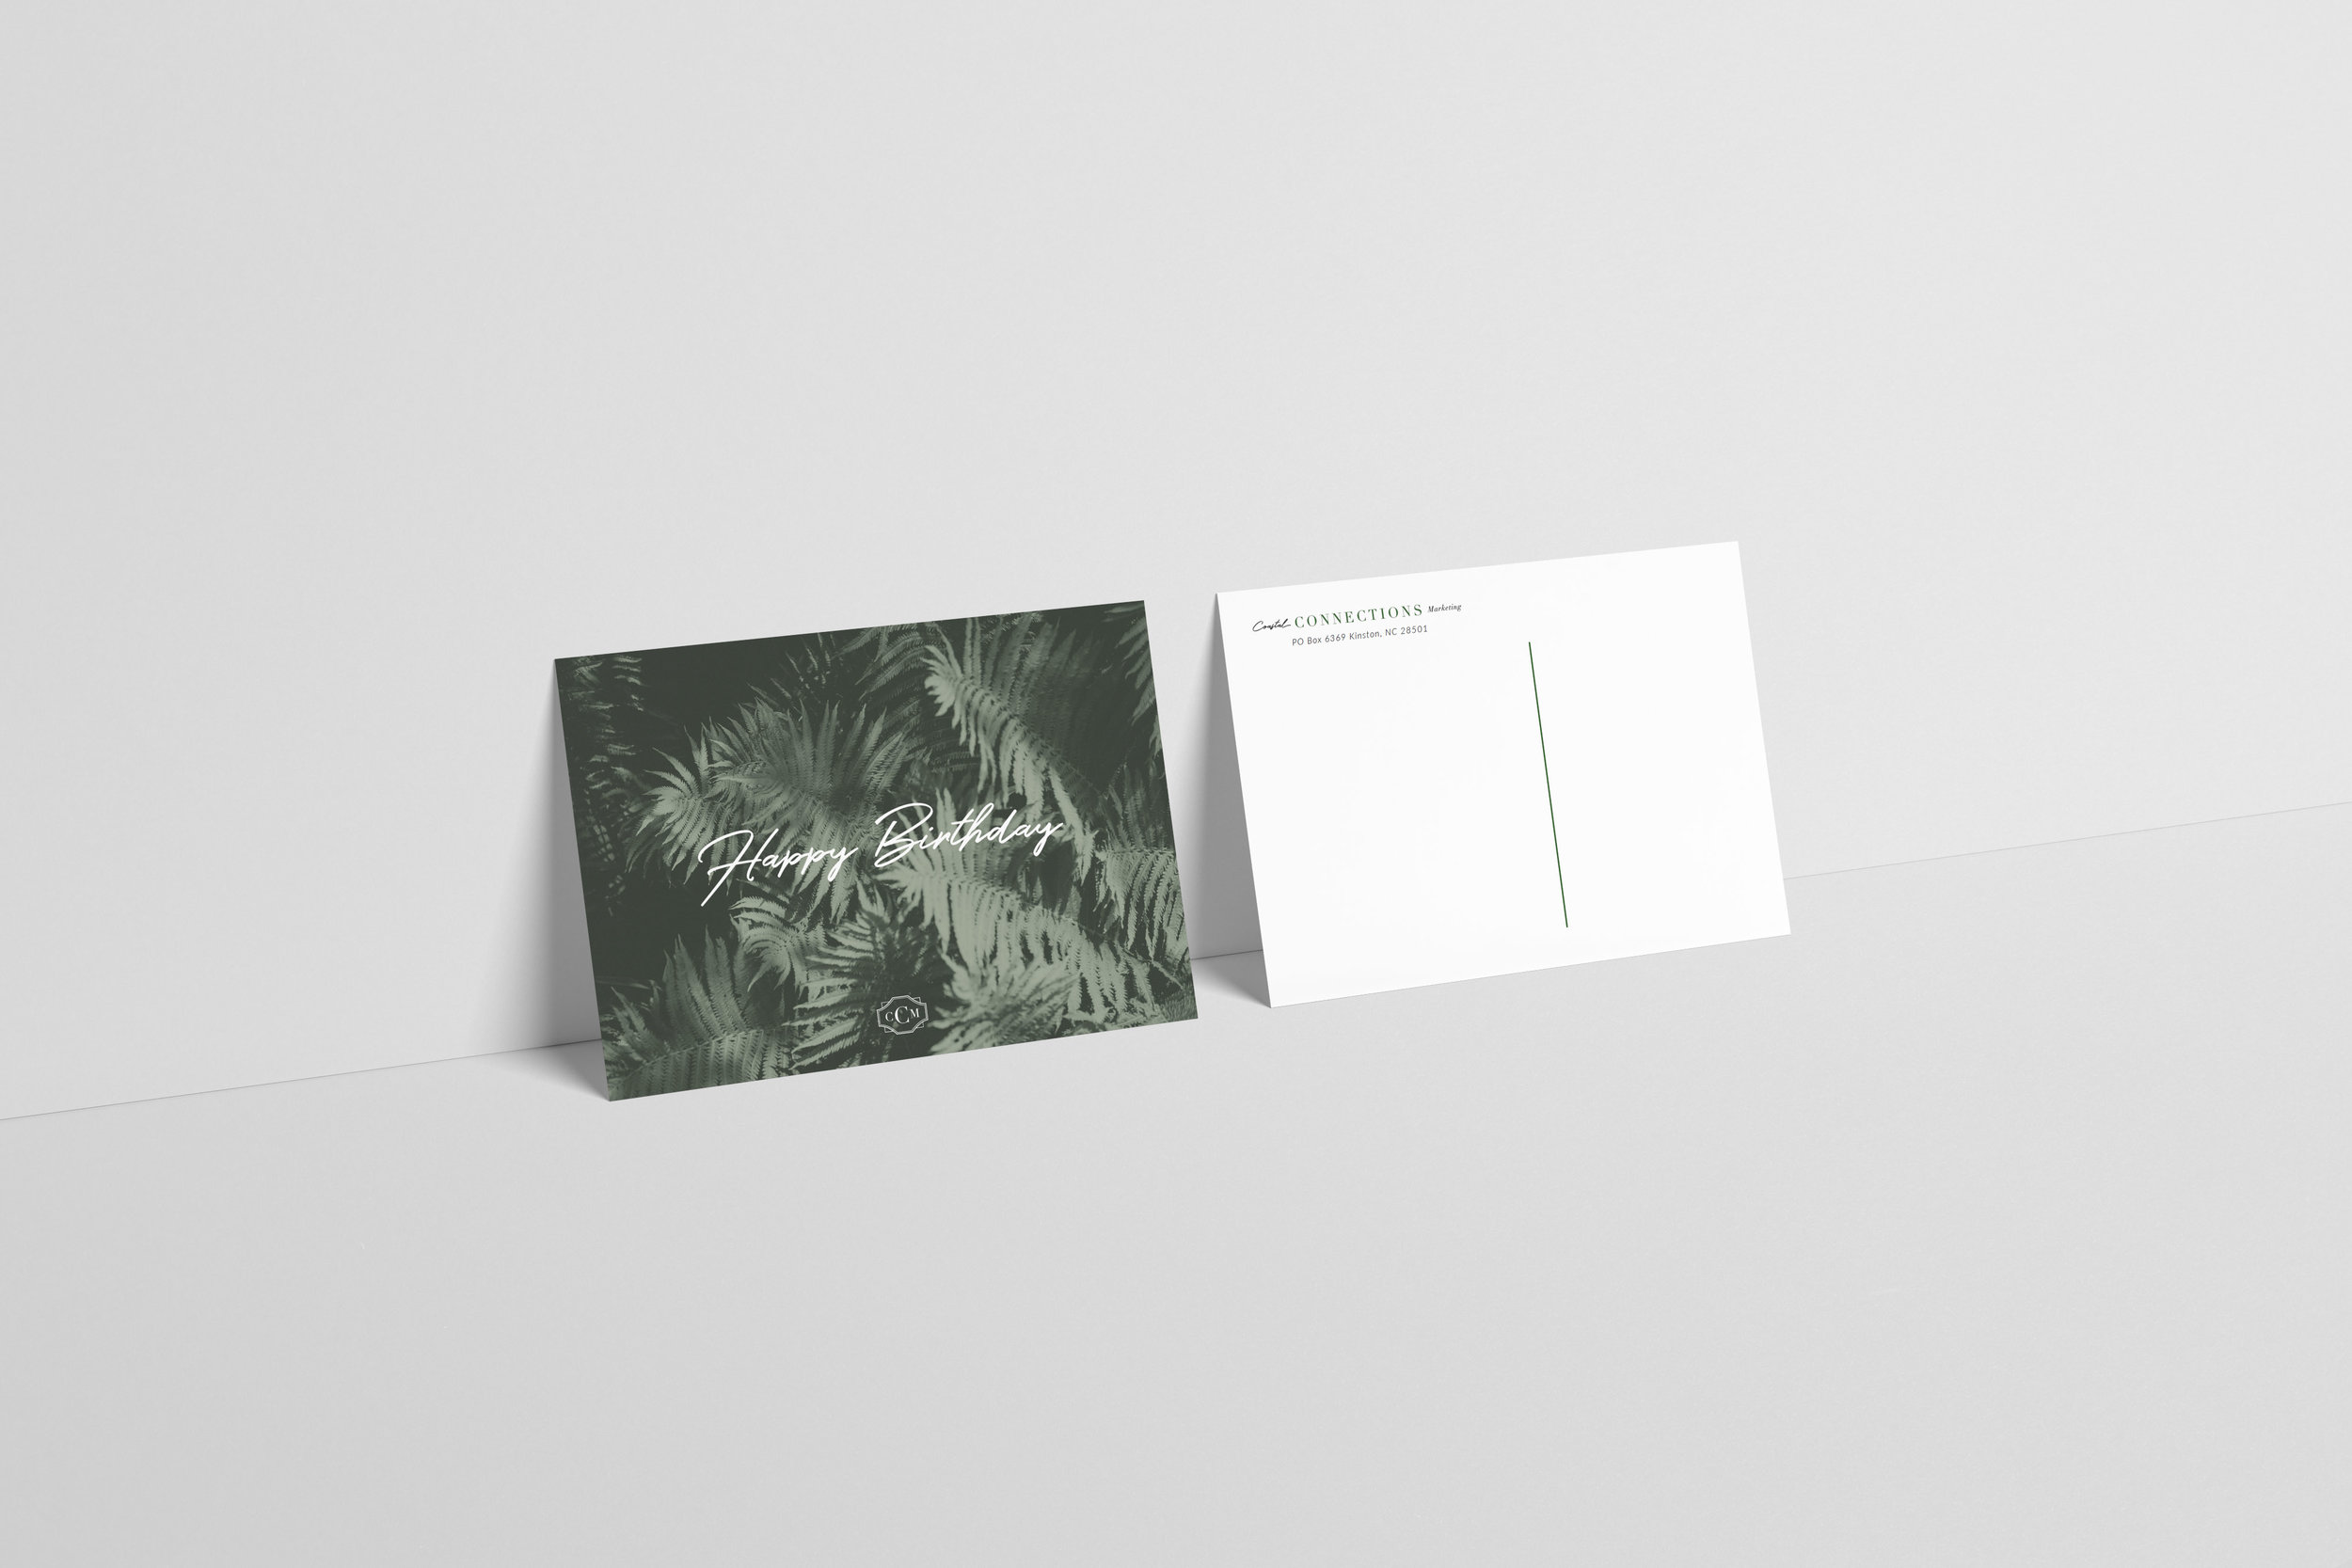 Coastal Connections Marketing-Postcard design-Tulsa brand designer.jpg